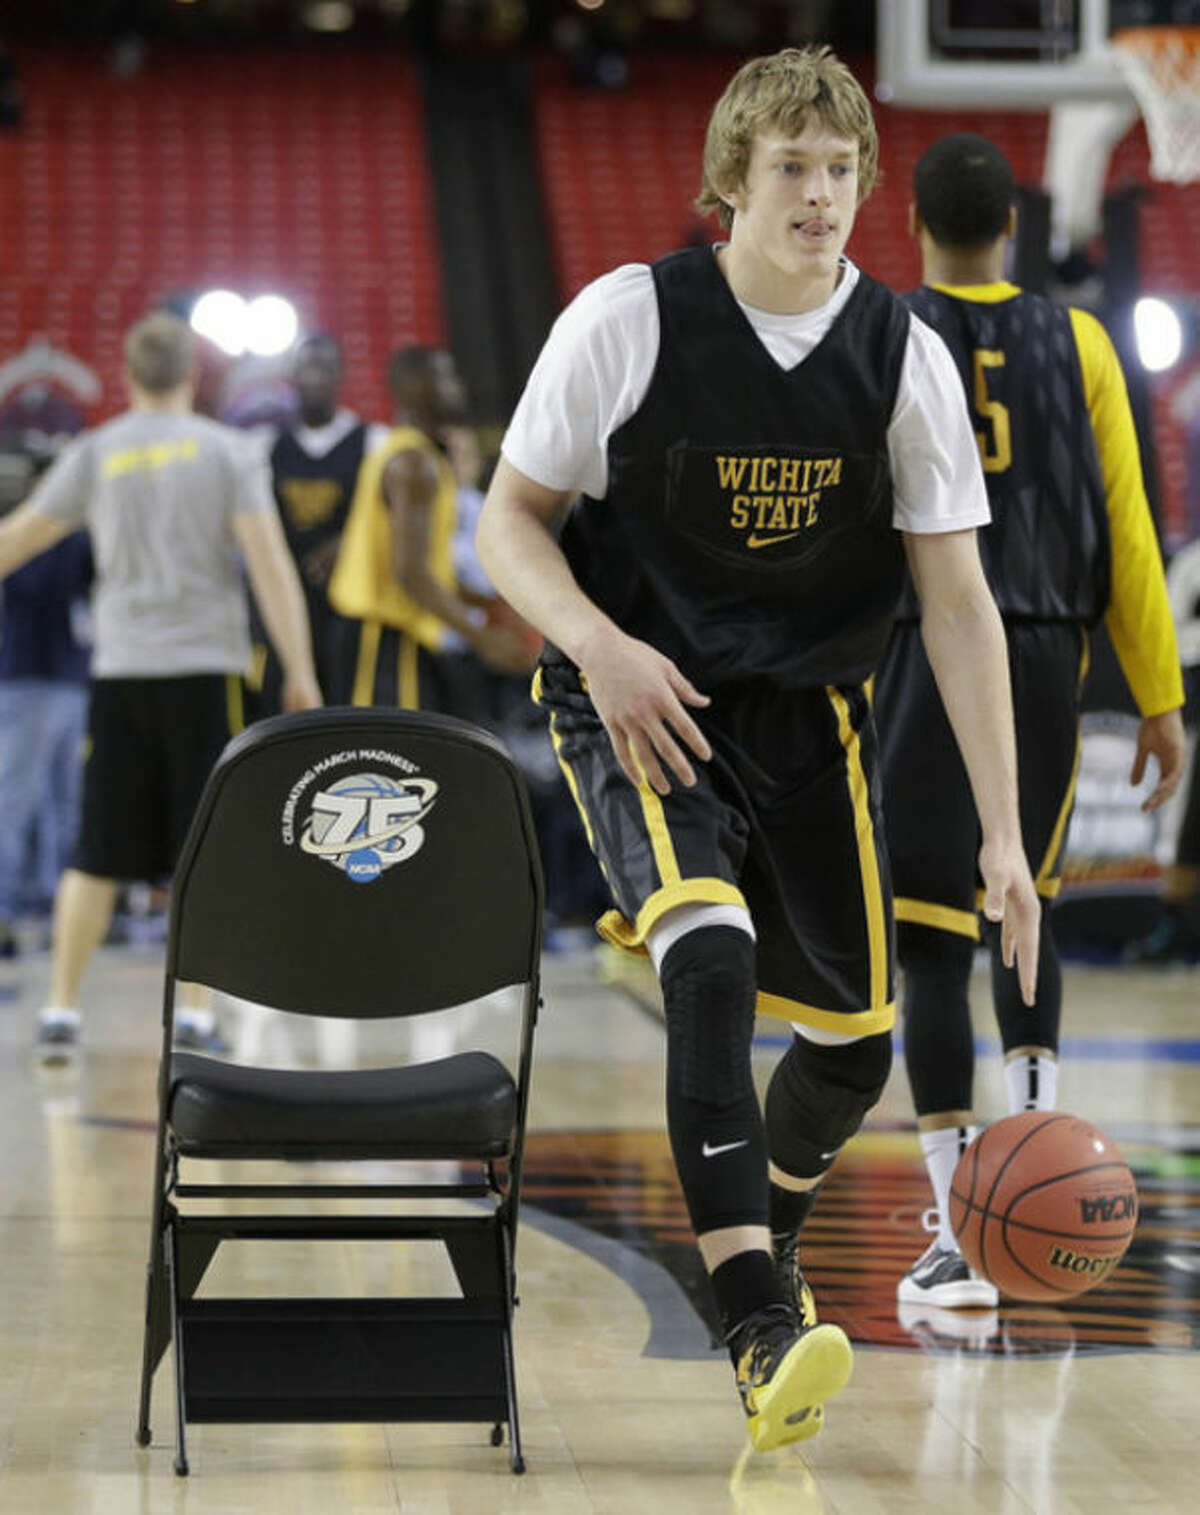 Wichita State's Ron Baker moves the ball during practice for their NCAA Final Four tournament college basketball semifinal game against Louisville, Friday, April 5, 2013, in Atlanta. Wichita State plays Louisville in a semifinal game on Saturday. (AP Photo/David J. Phillip)